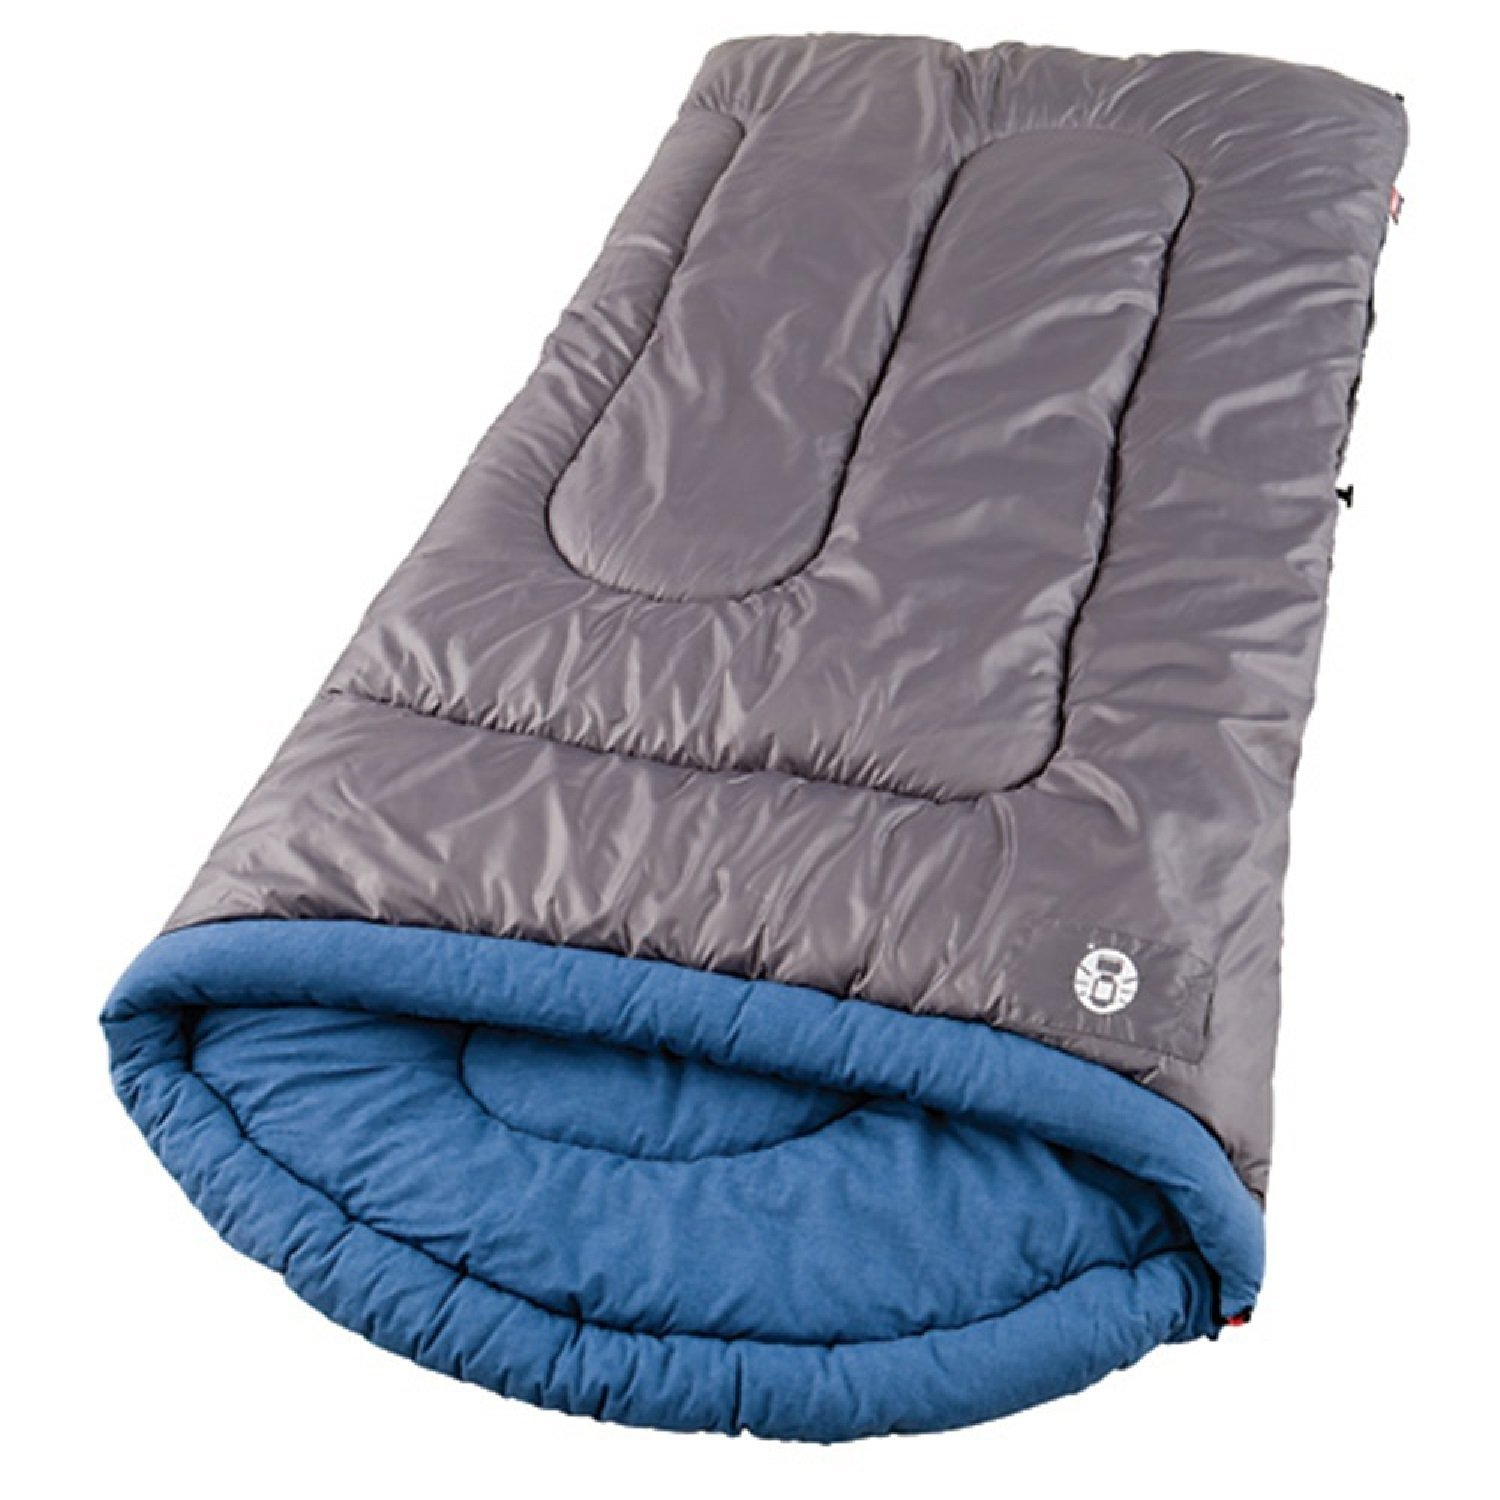 Affordable camping essentials for families: Coleman sleeping bag